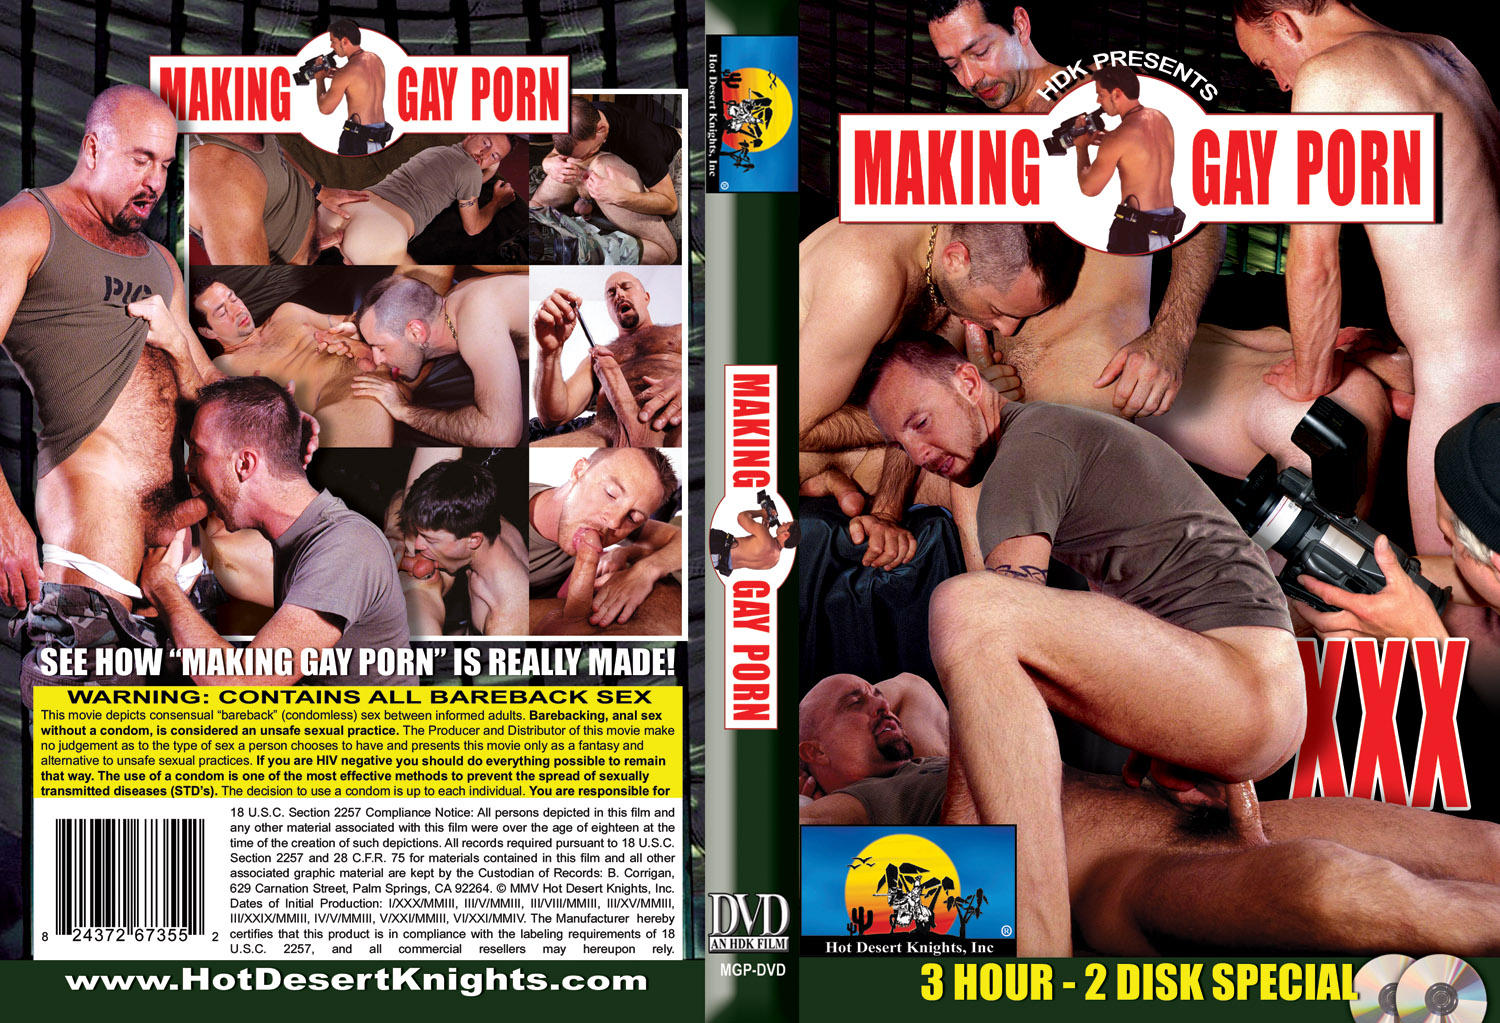 HDK Movie: MAKING GAY PORN